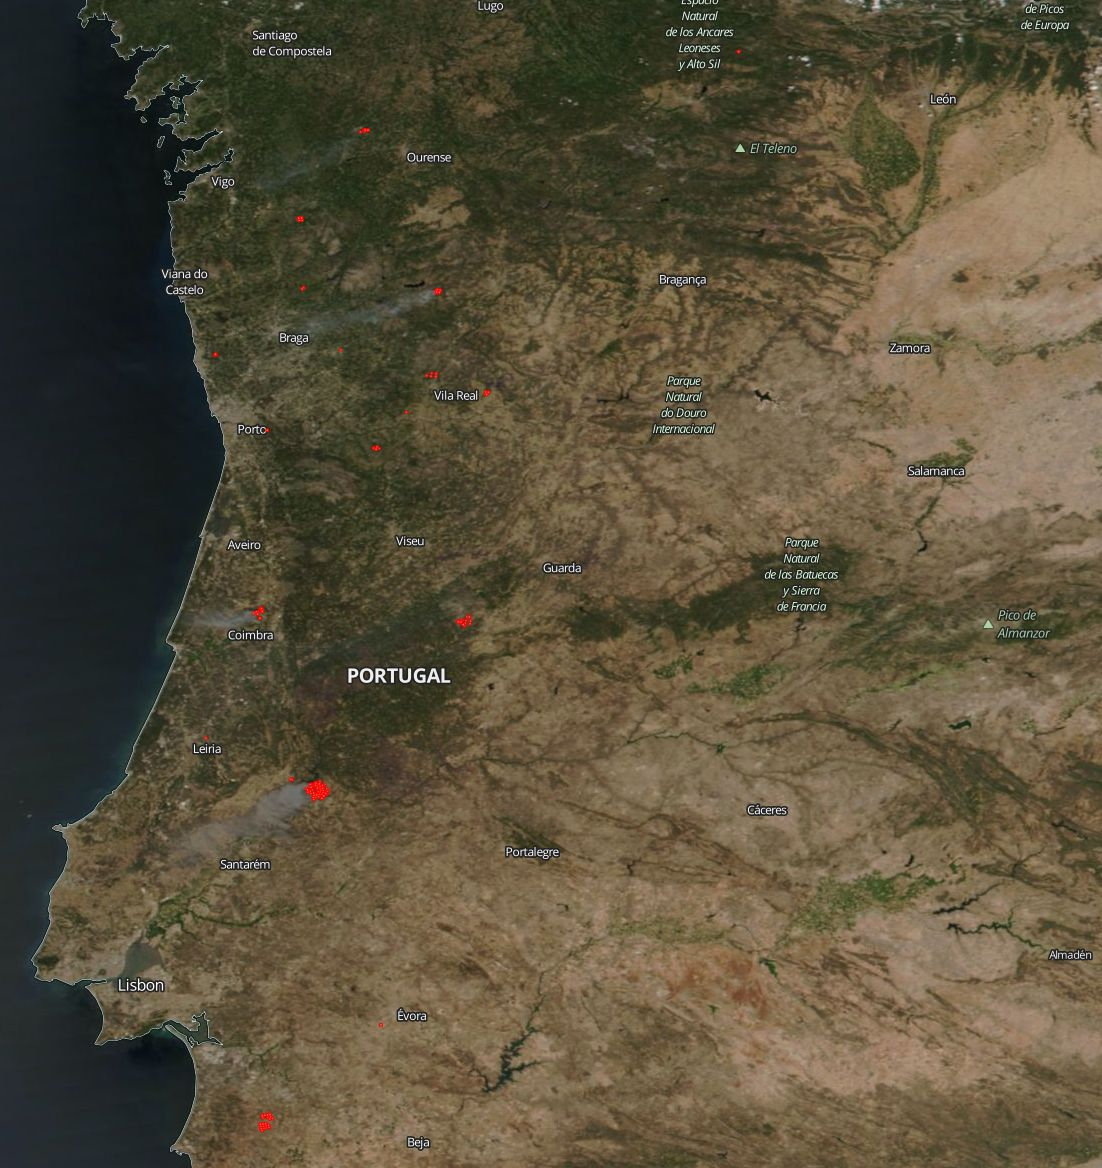 Temperatures Soar In Portugal And New Fires Break Out NASA - Portugal map of fires